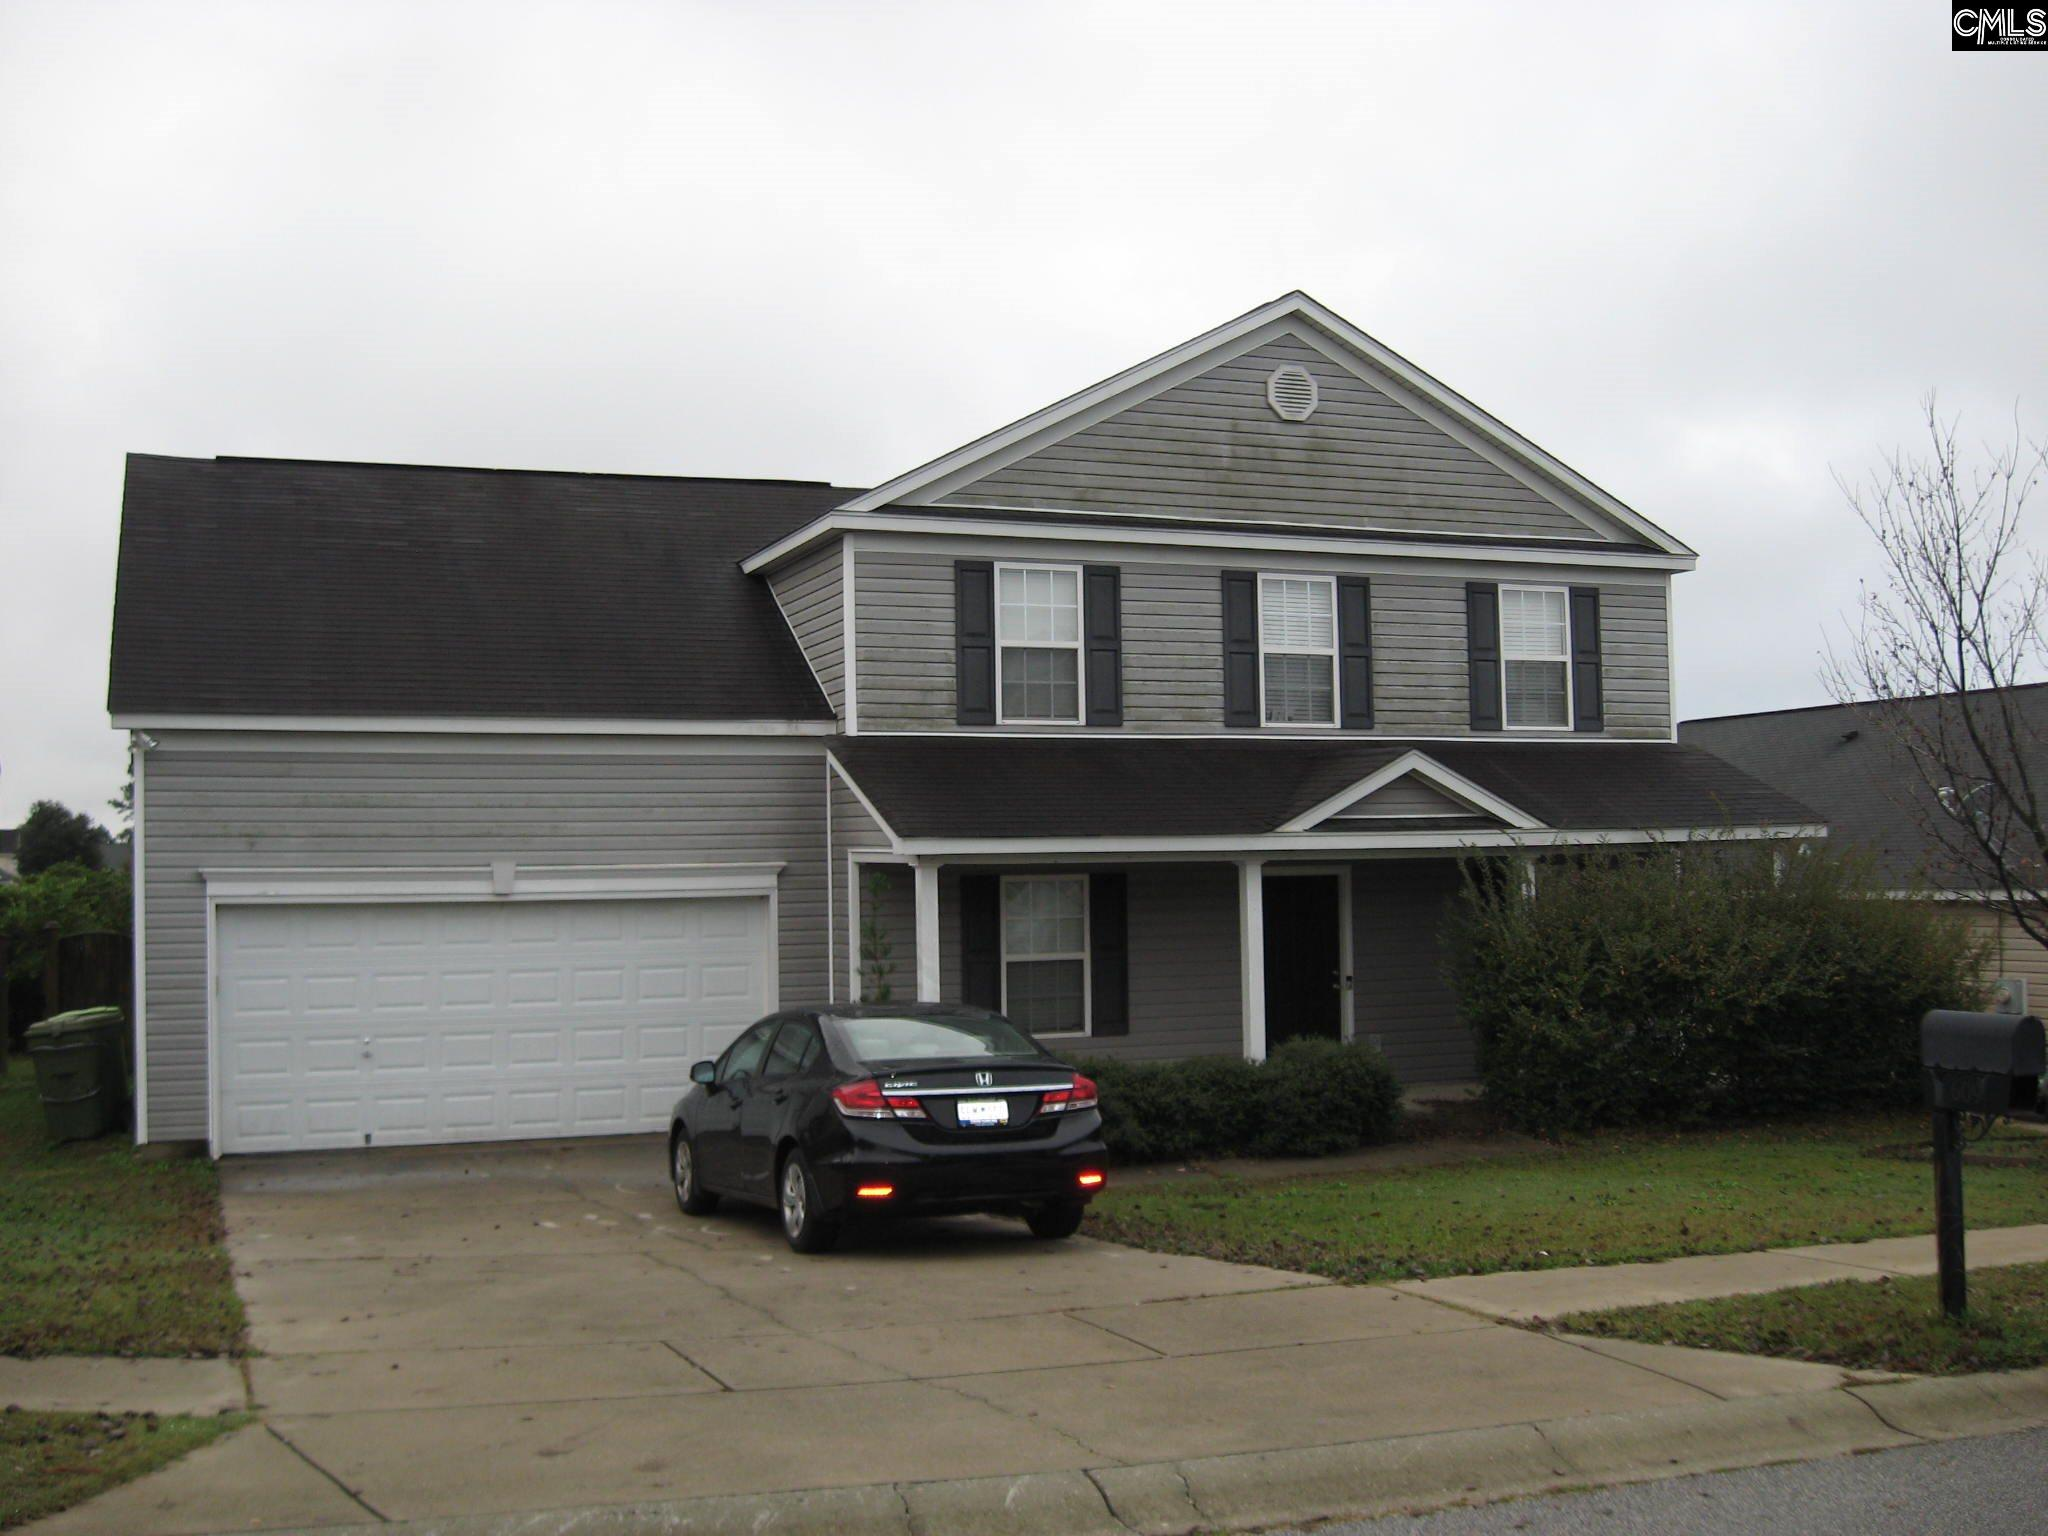 609 Summerall Columbia, SC 29229-6810